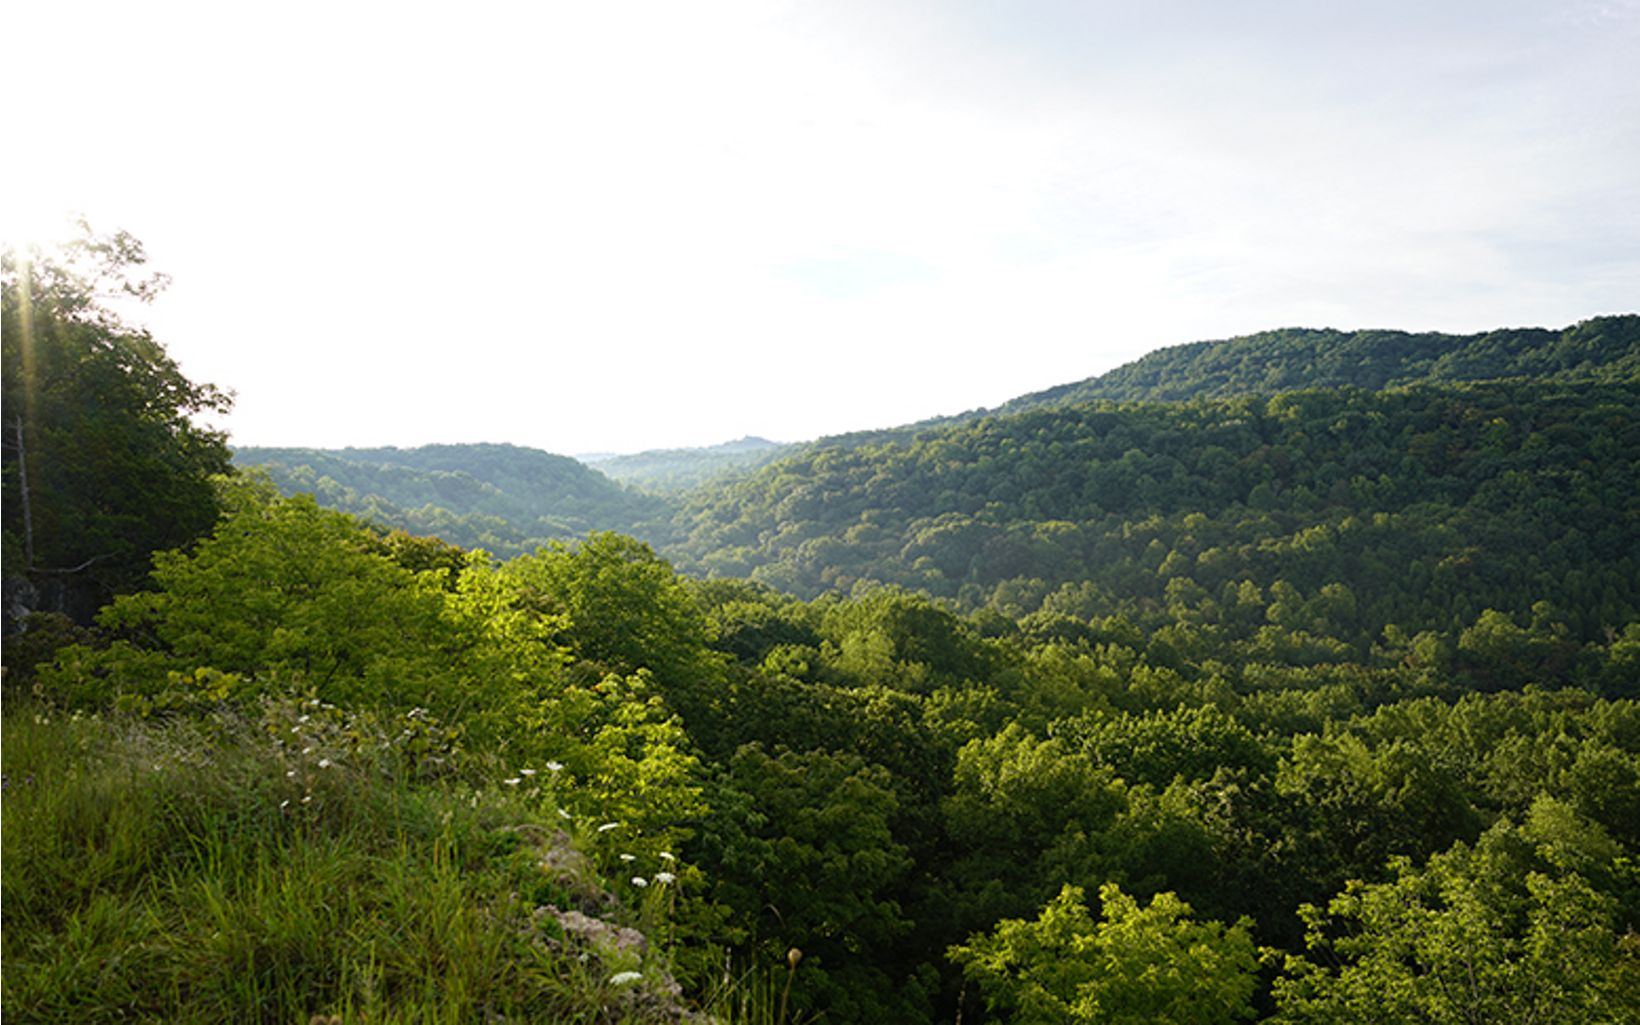 Looking over the hills of Southern Ohio that are covered in lush green forests on a sunny day.